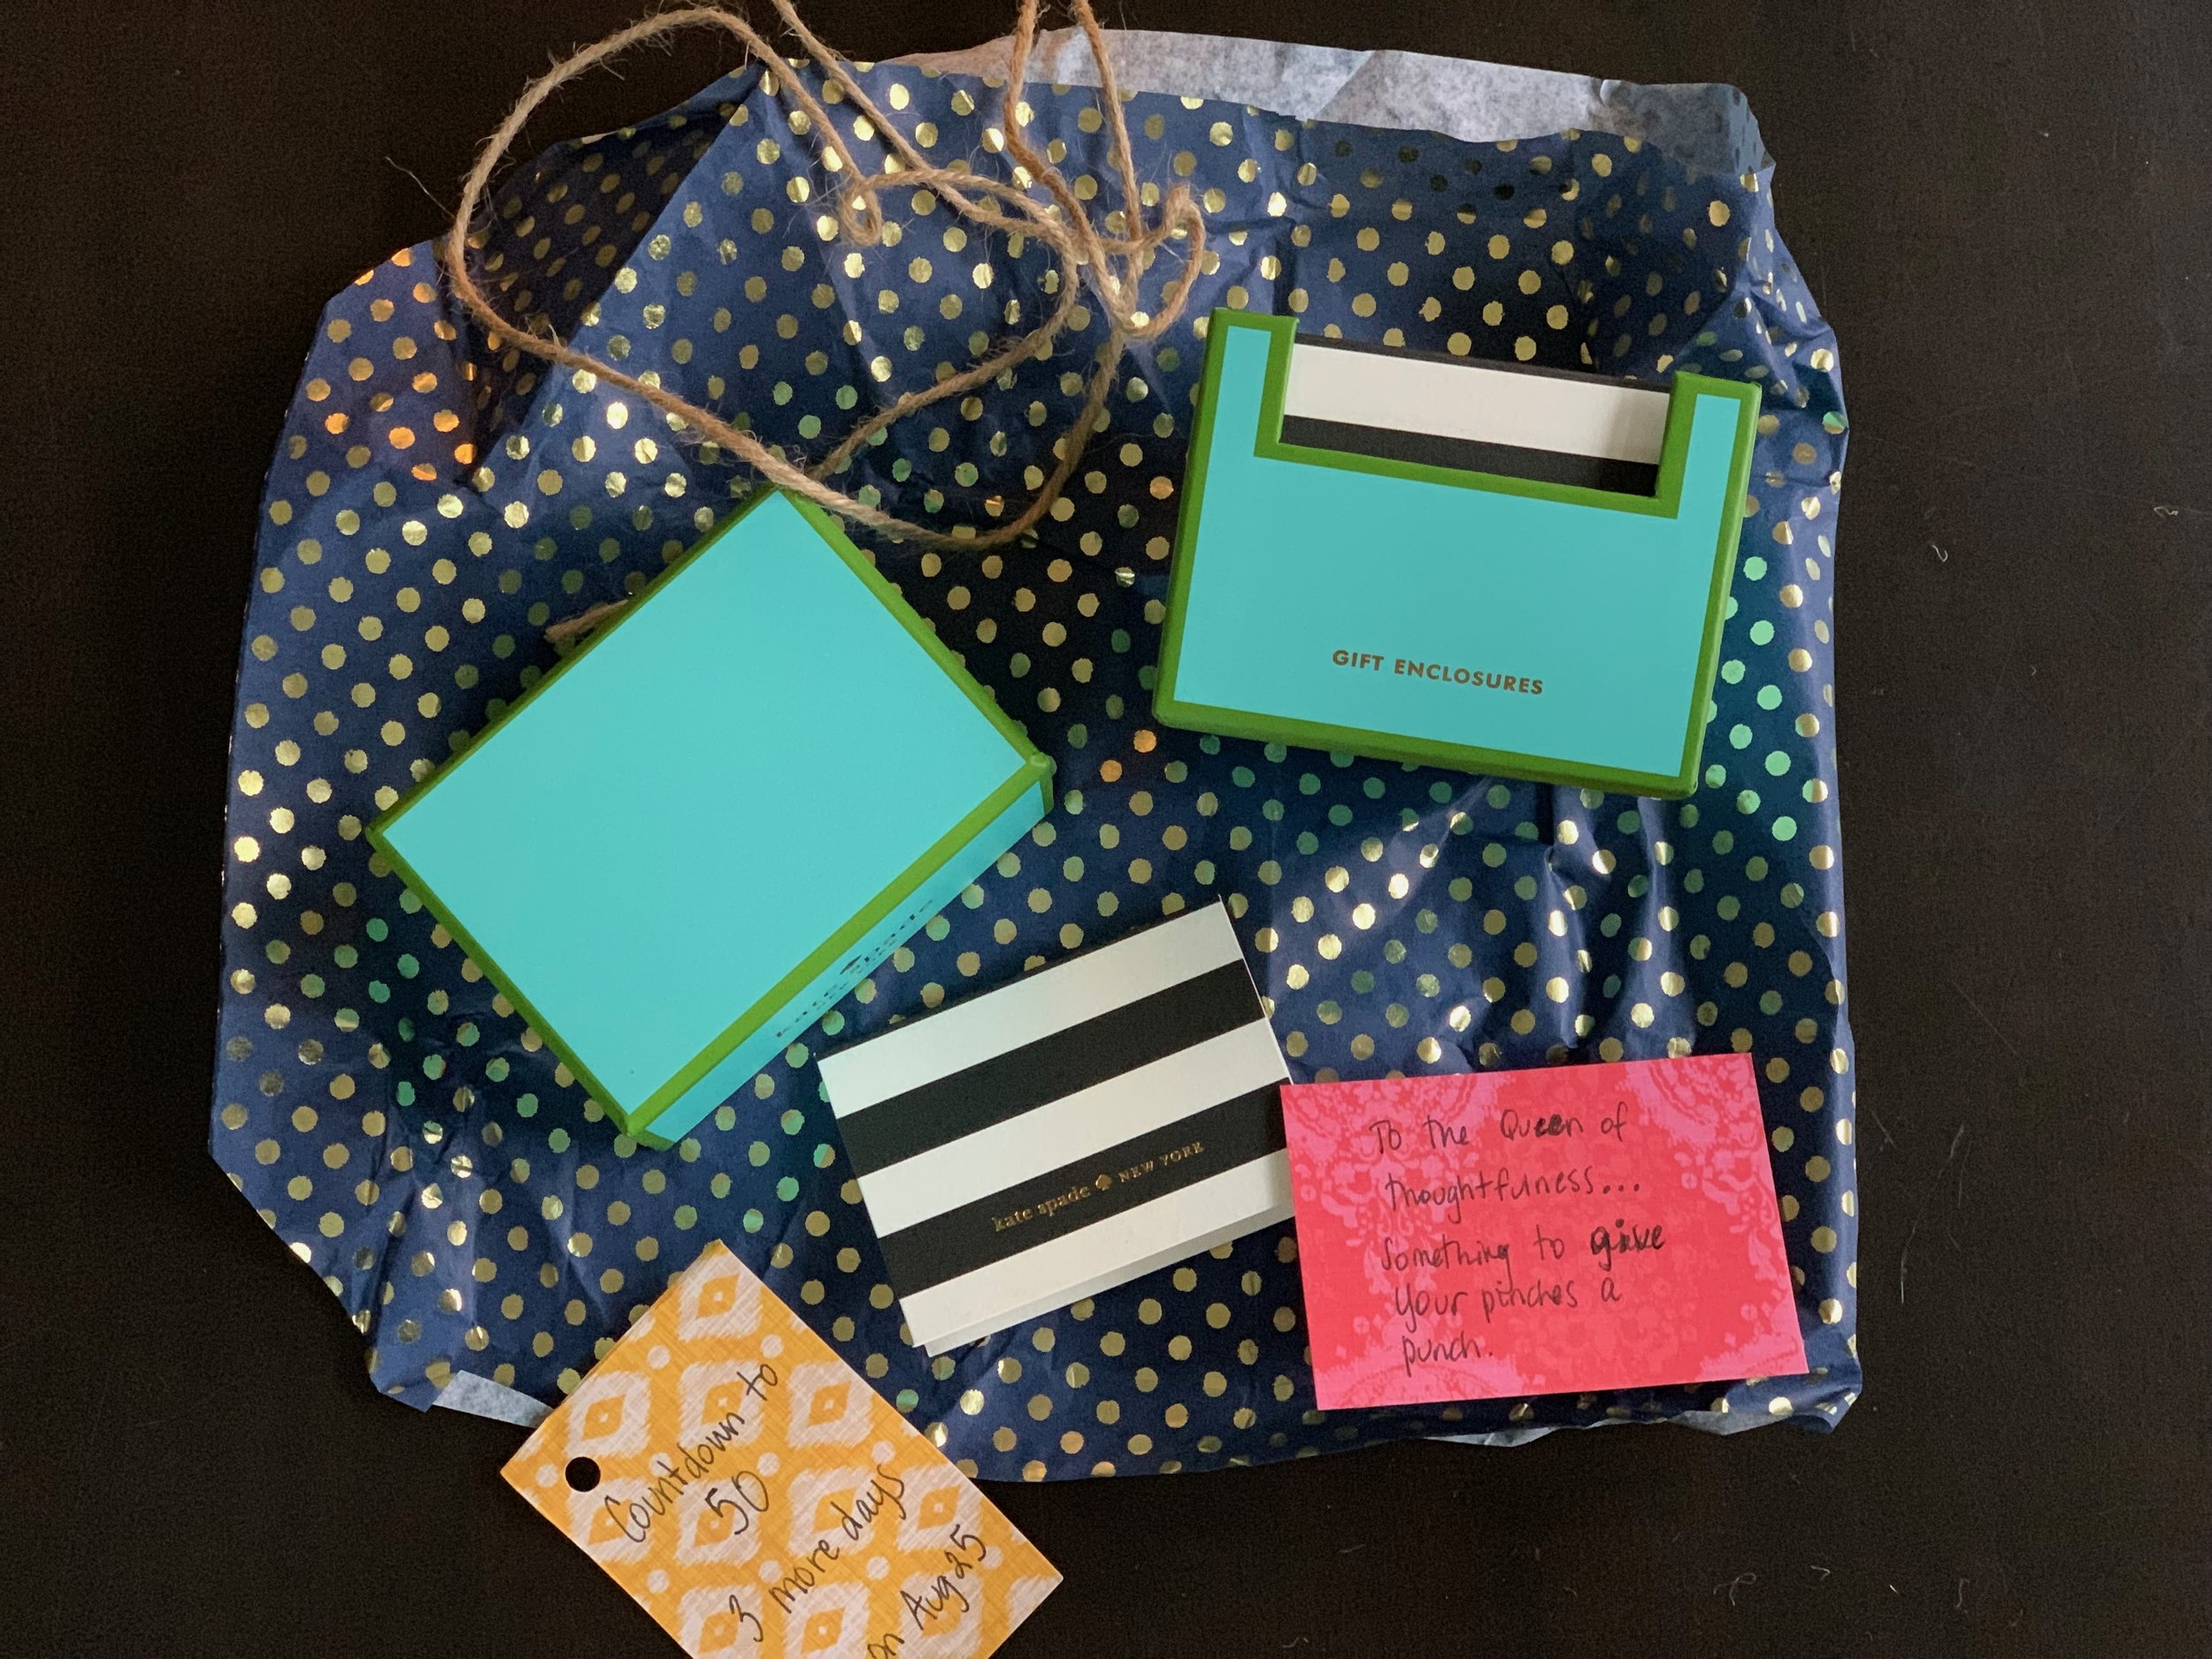 """Gift #5 - I can't get enough Kate Spade. These gift tags are way too  thoughtful ! She is right about them being a """"punch"""" for my  pinches ."""